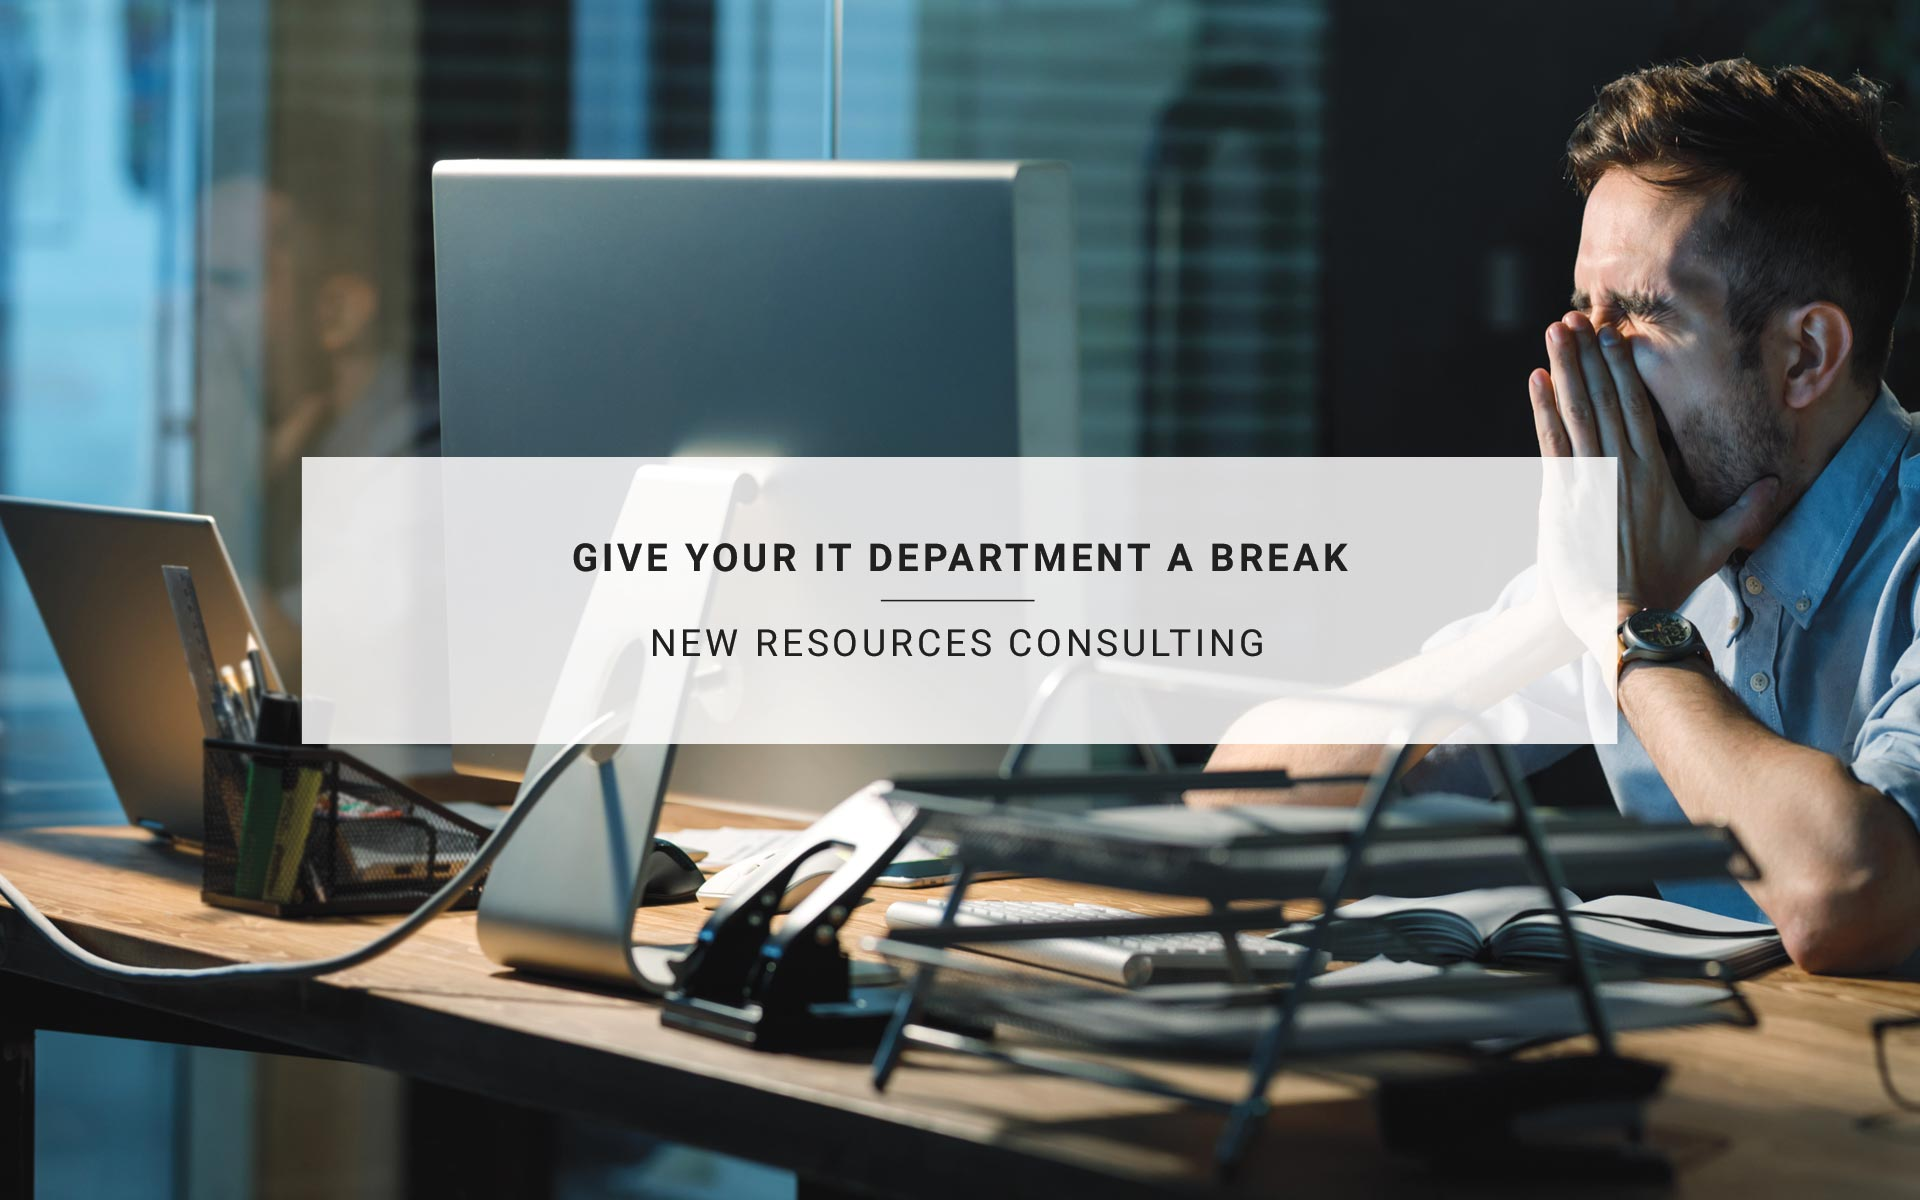 Give Your IT Department A Break